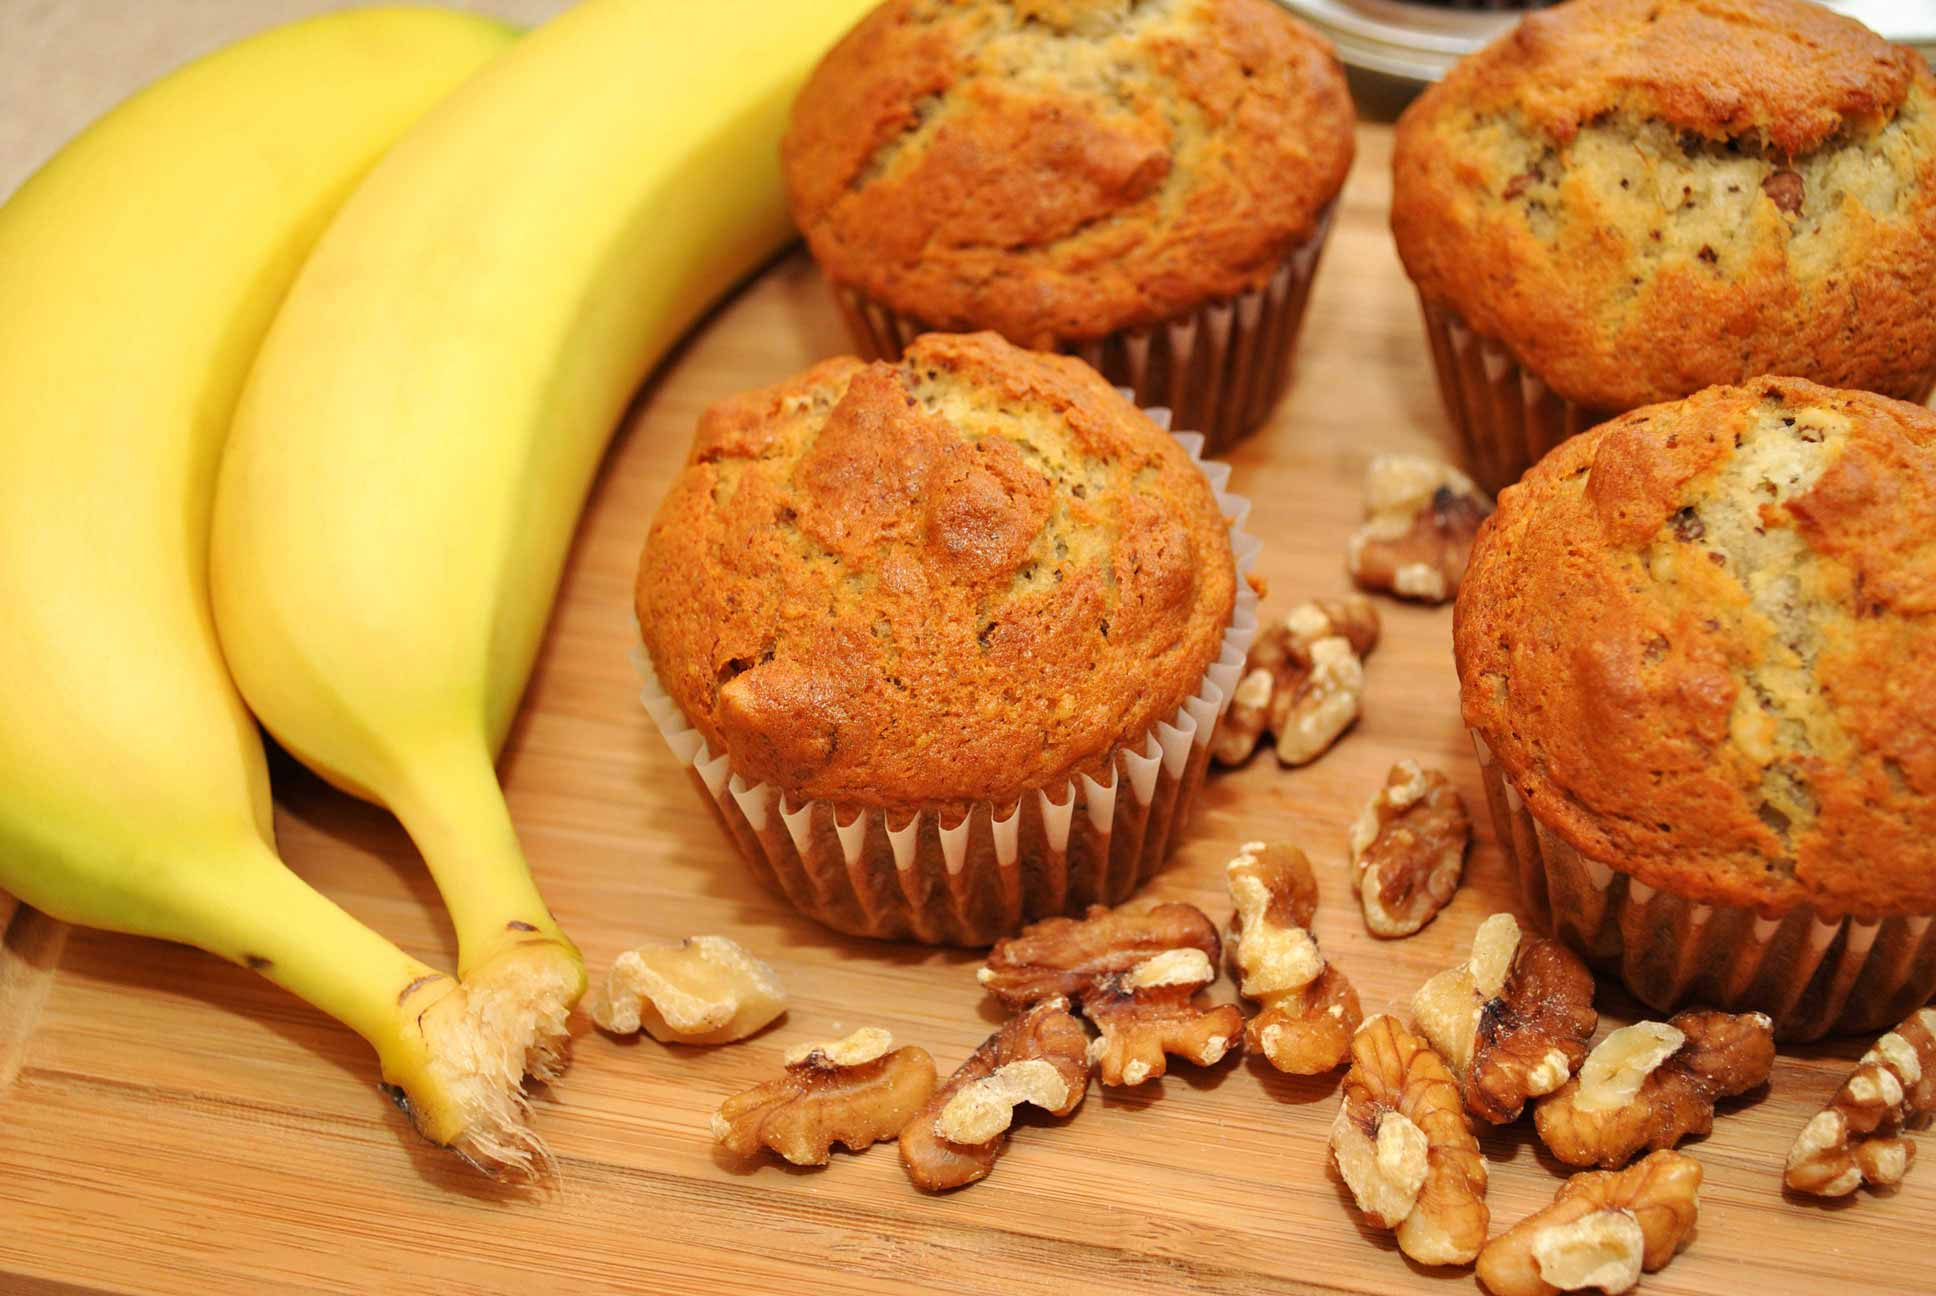 Rise and Shine with Healthier Breakfast Choices